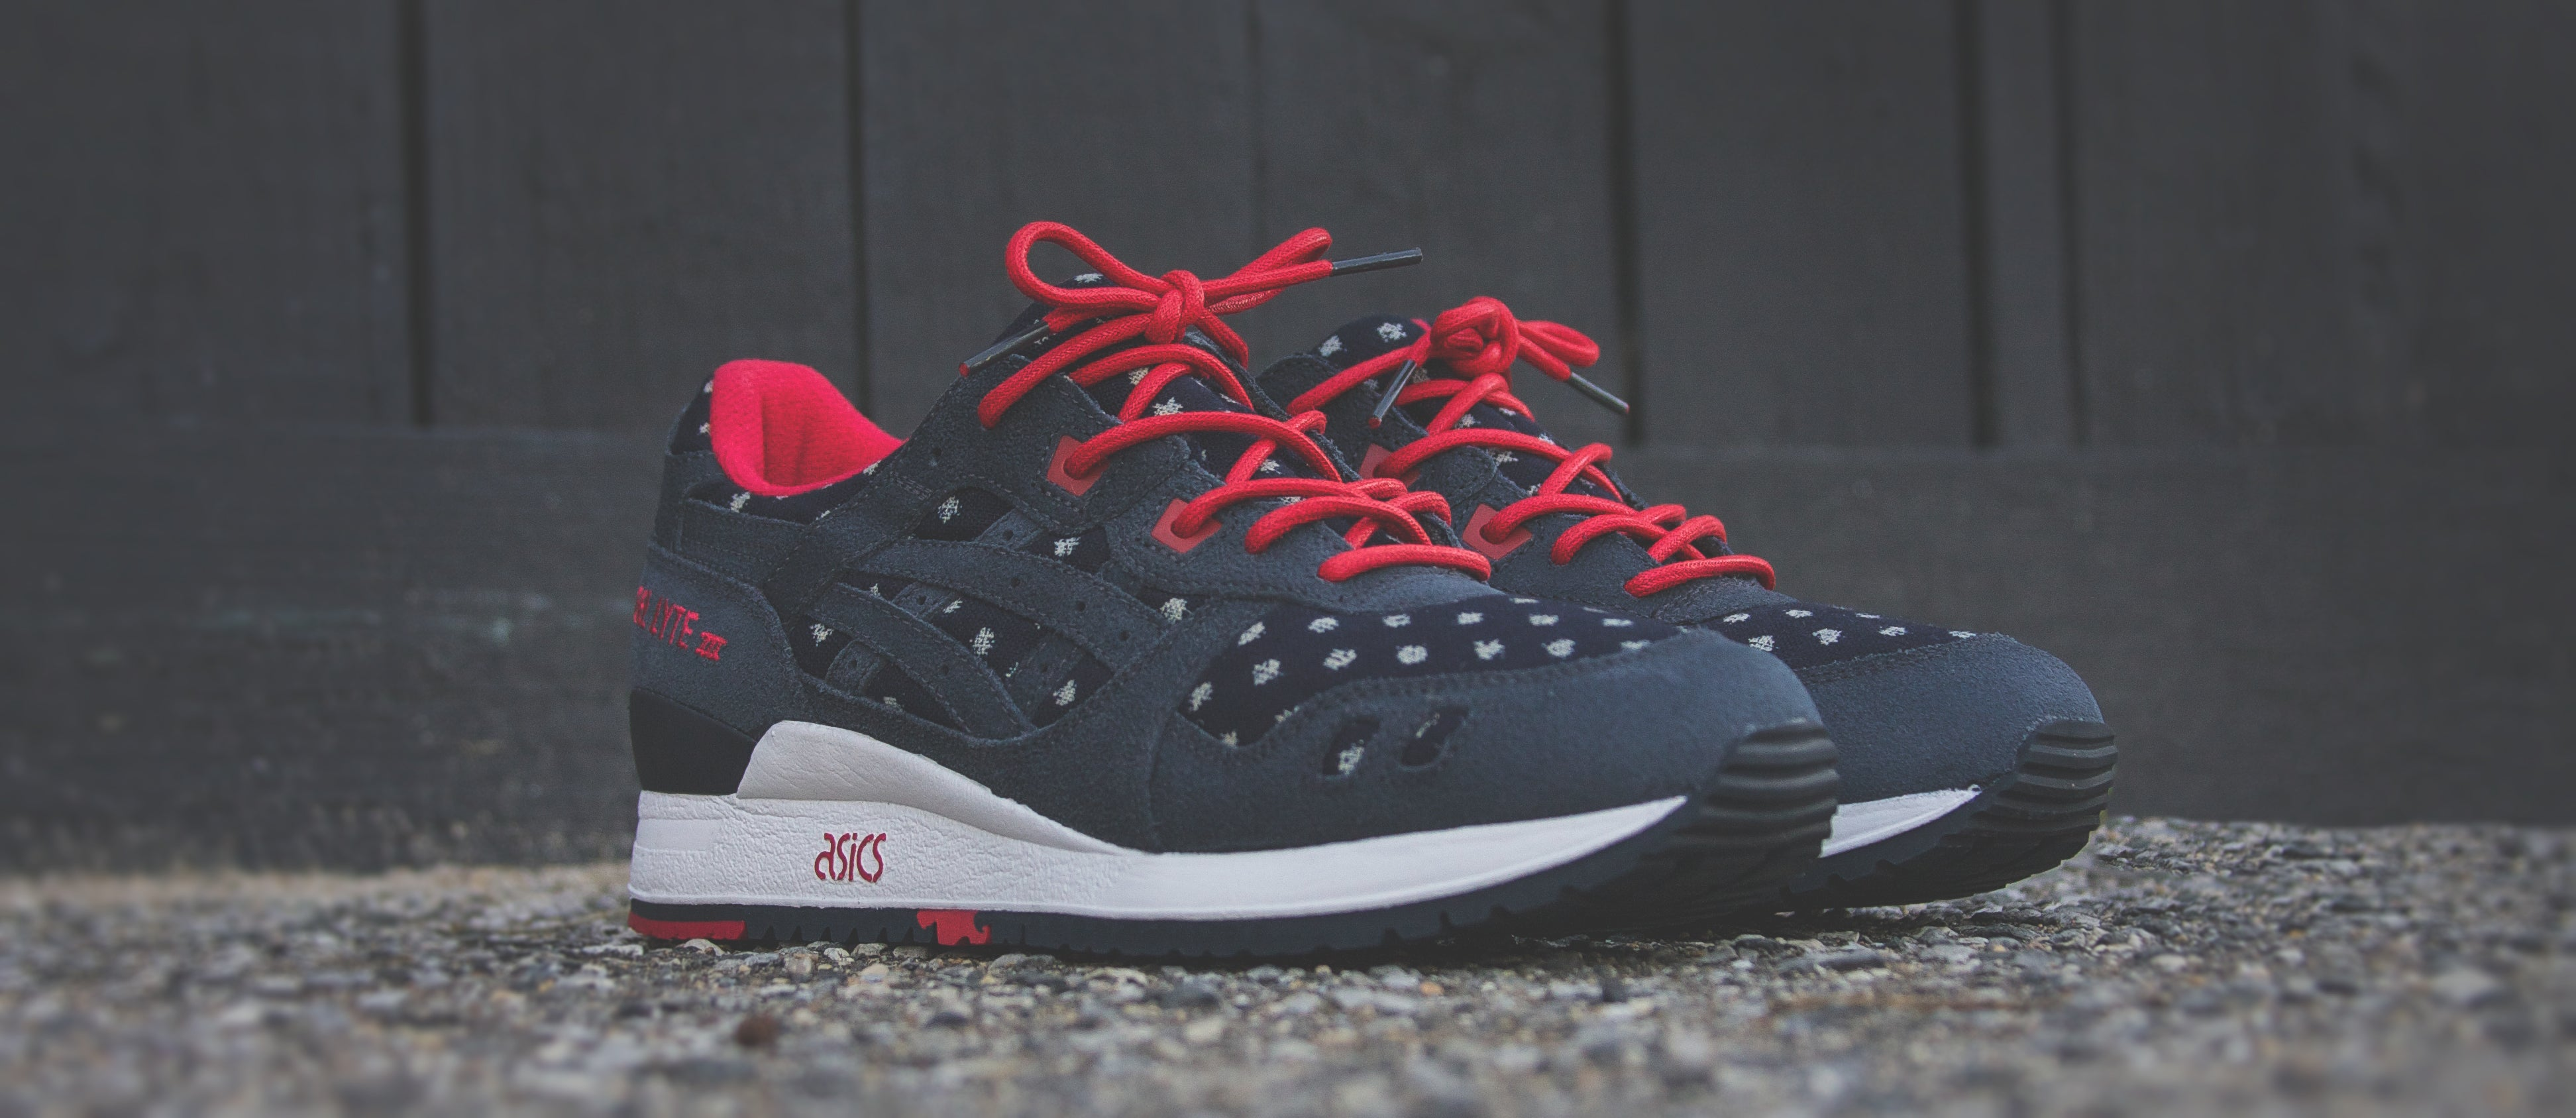 """... the final installment of the collaborative """"Basics Program"""" between  ASICS and California s own BAIT once again uses the Gel Lyte III  silhouette 1acef0ccf4"""